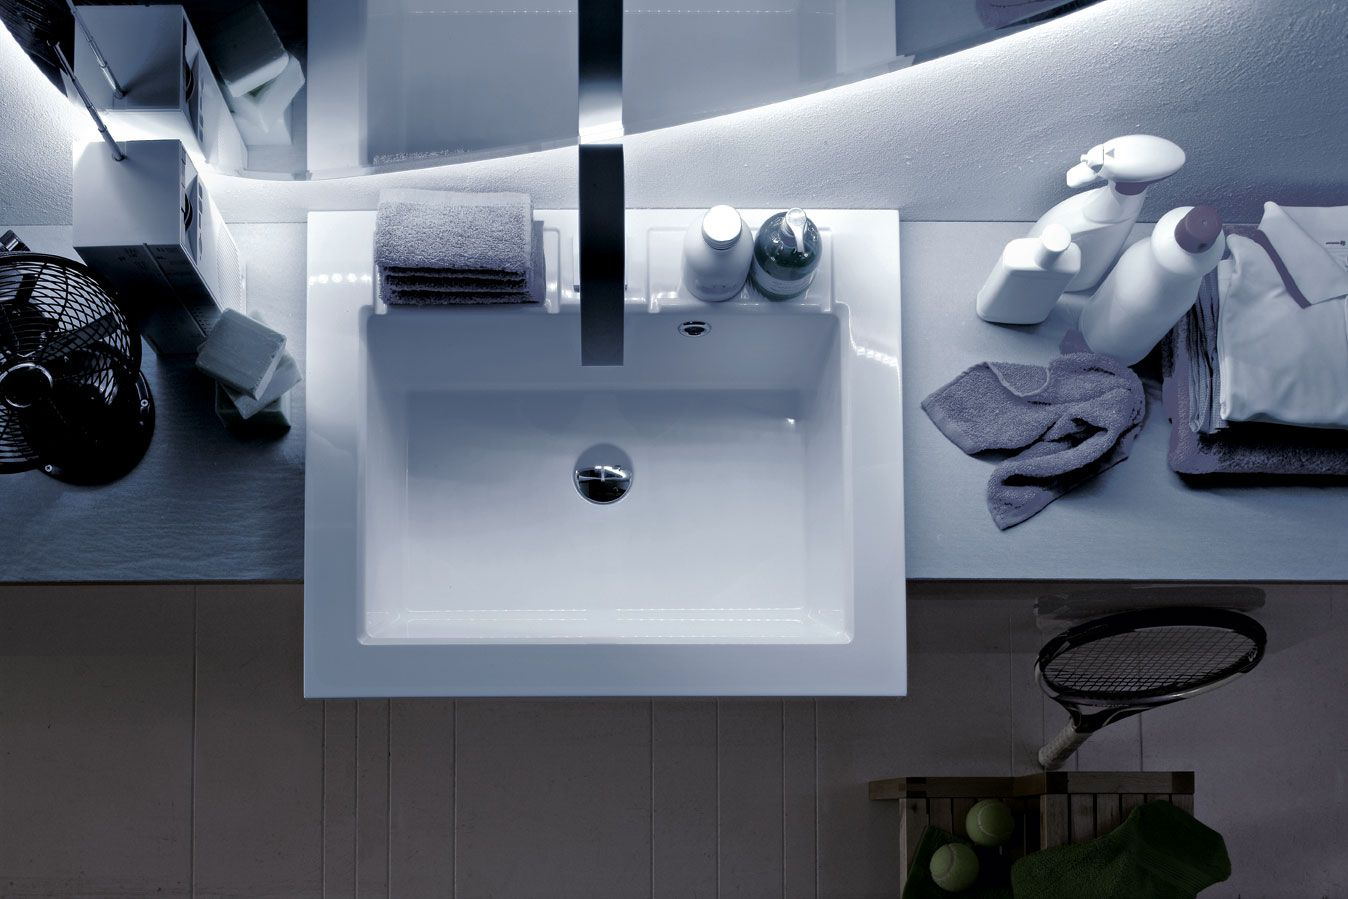 Bathroom Sinks Long Island teoria #bathroomsinks #bathroom #sinks #manhasset #longisland